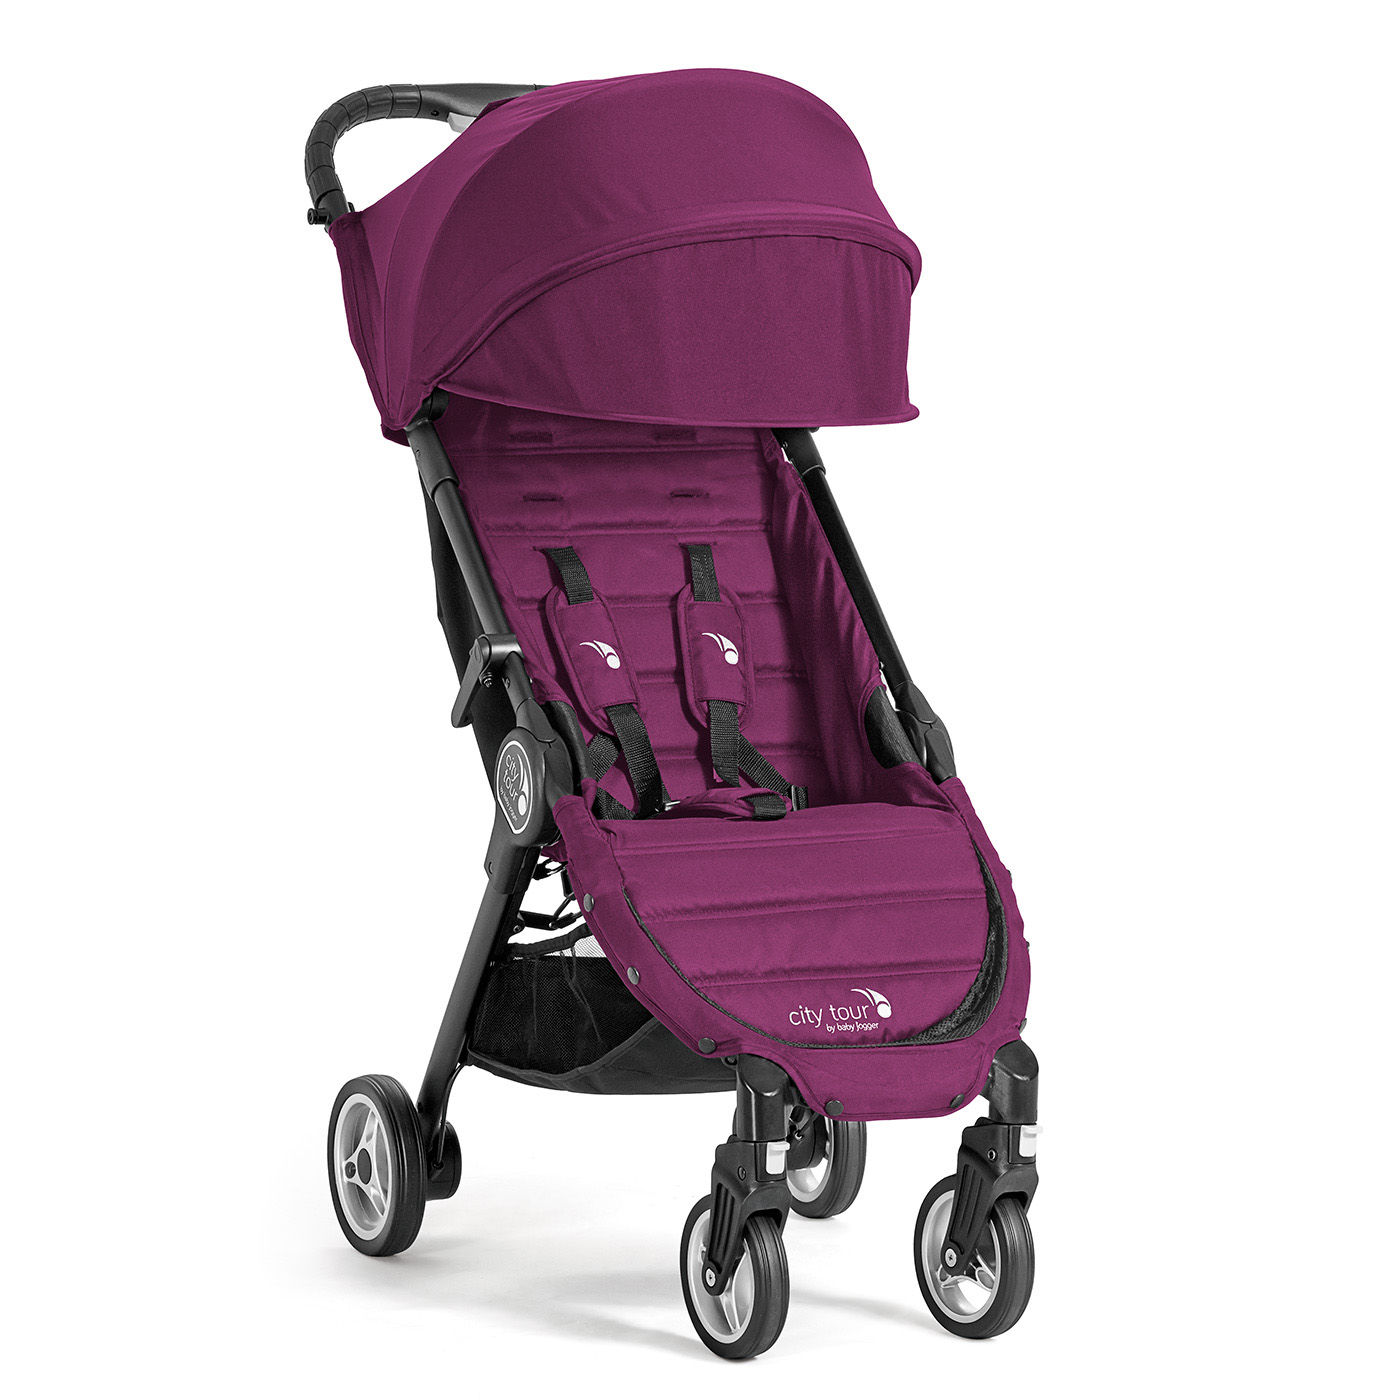 Babyjogger city tour in violett